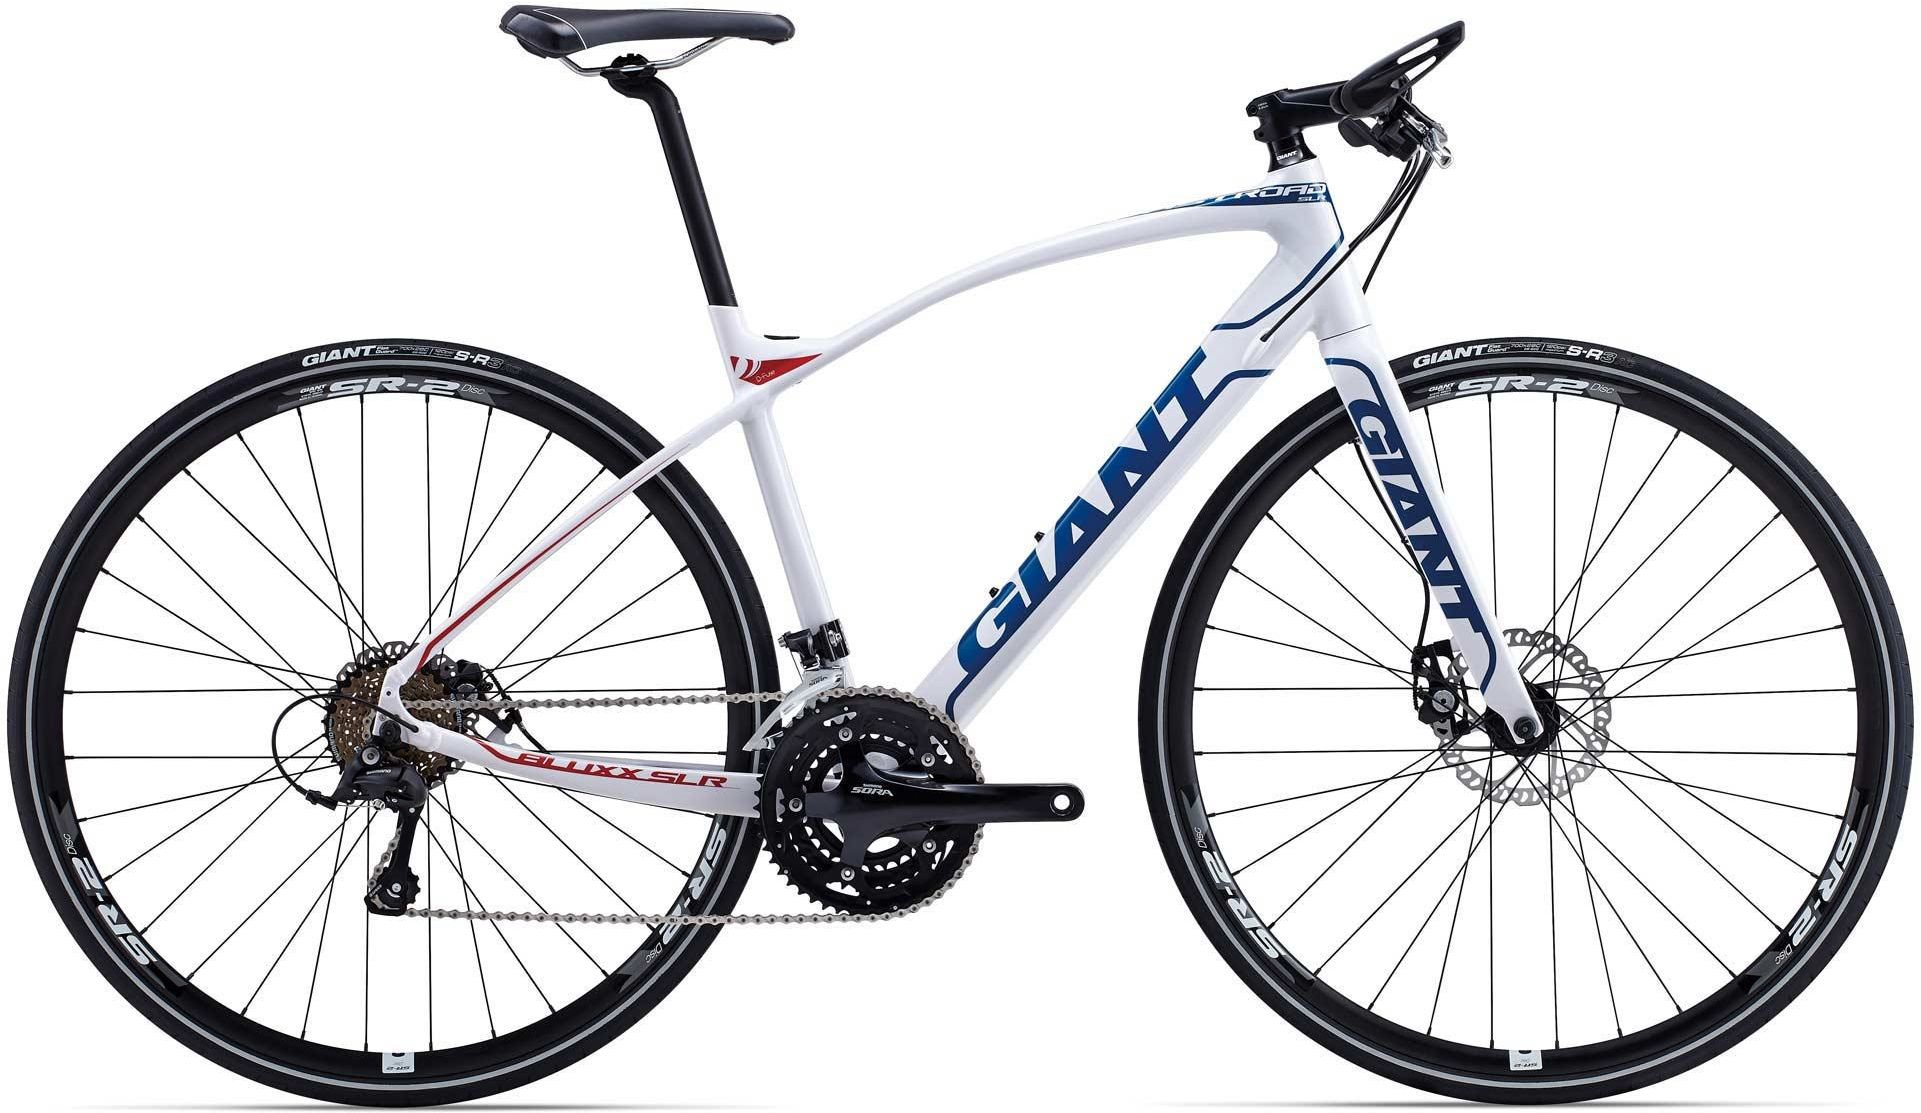 Giant Fastroad Slr 2015 Review The Bike List